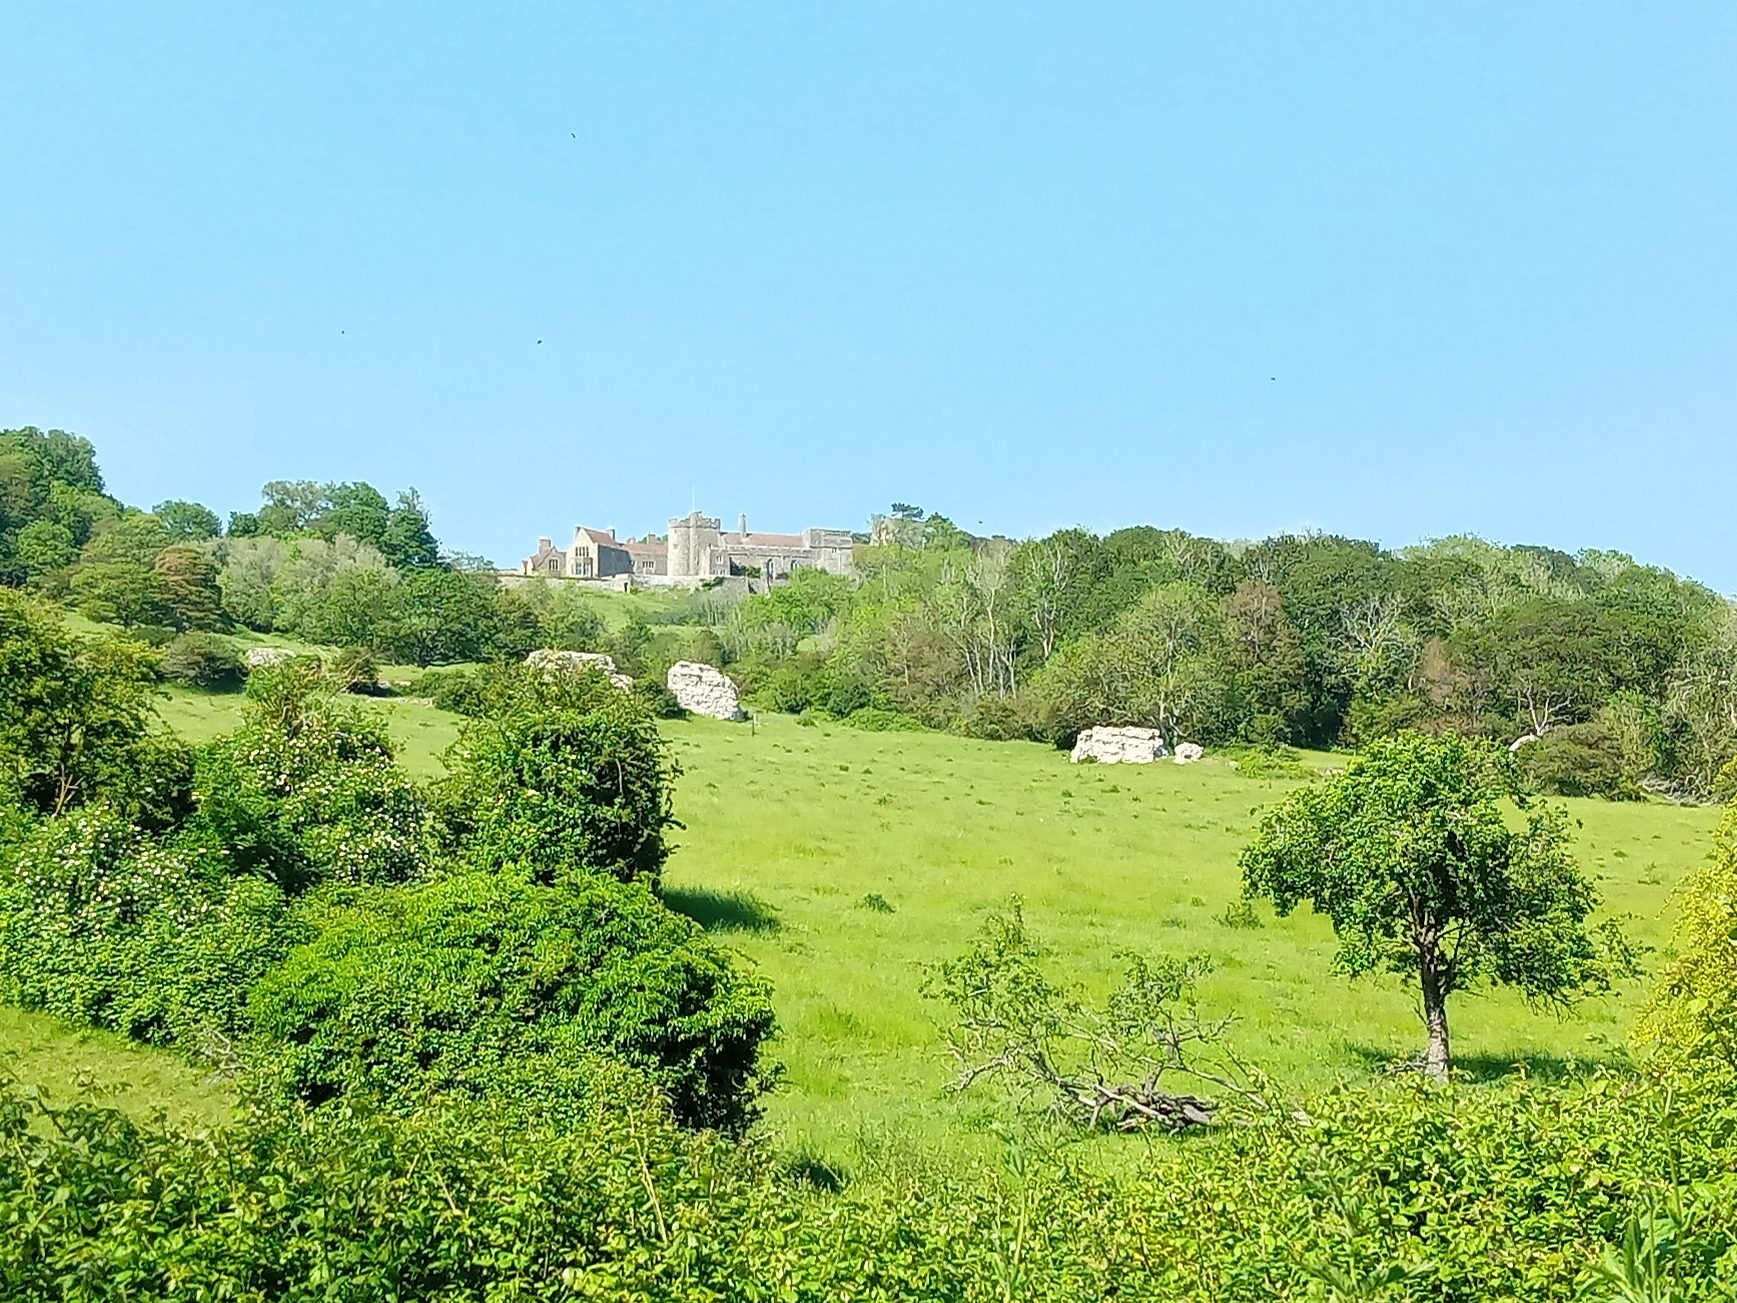 An image of beautiful, green, tree speckled hills with the fragmented ruins of a Roman Fort nestled in the green. On top of the hill sits a large building that looks like a castle.